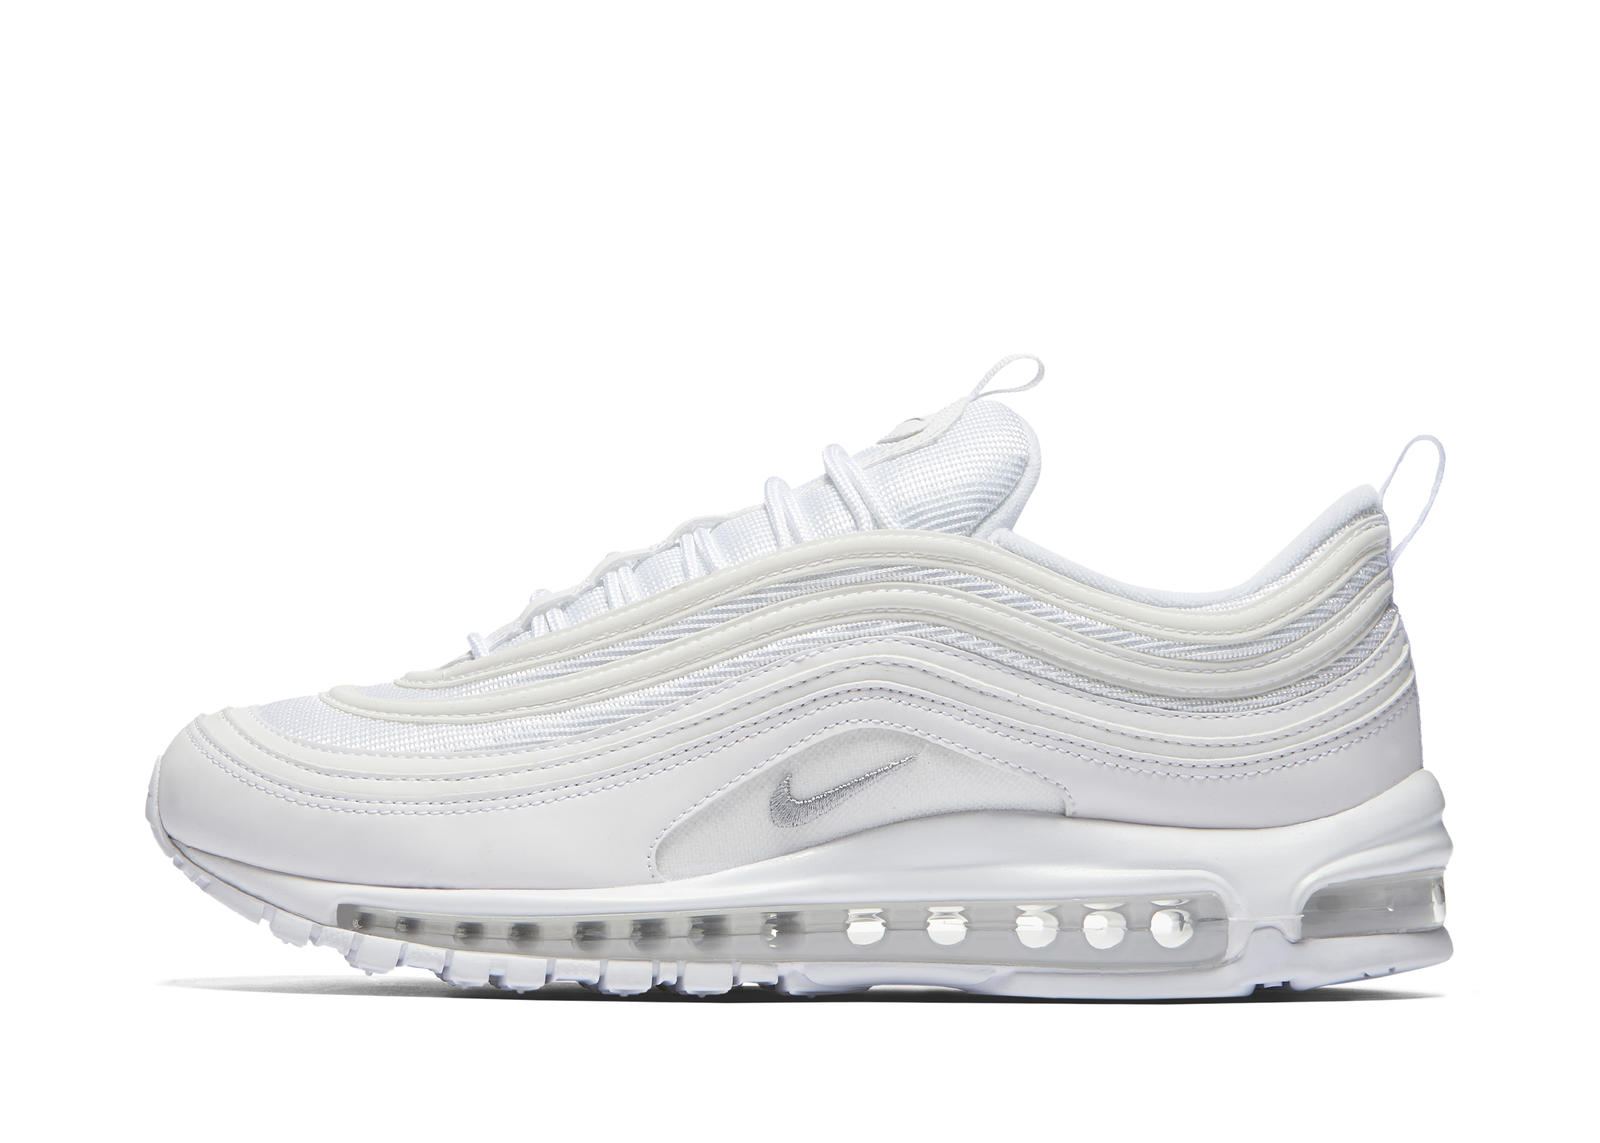 Nike Air Max 97 Release Guide For Fall 10 Colorways To Celebrate 20 Years Weartesters